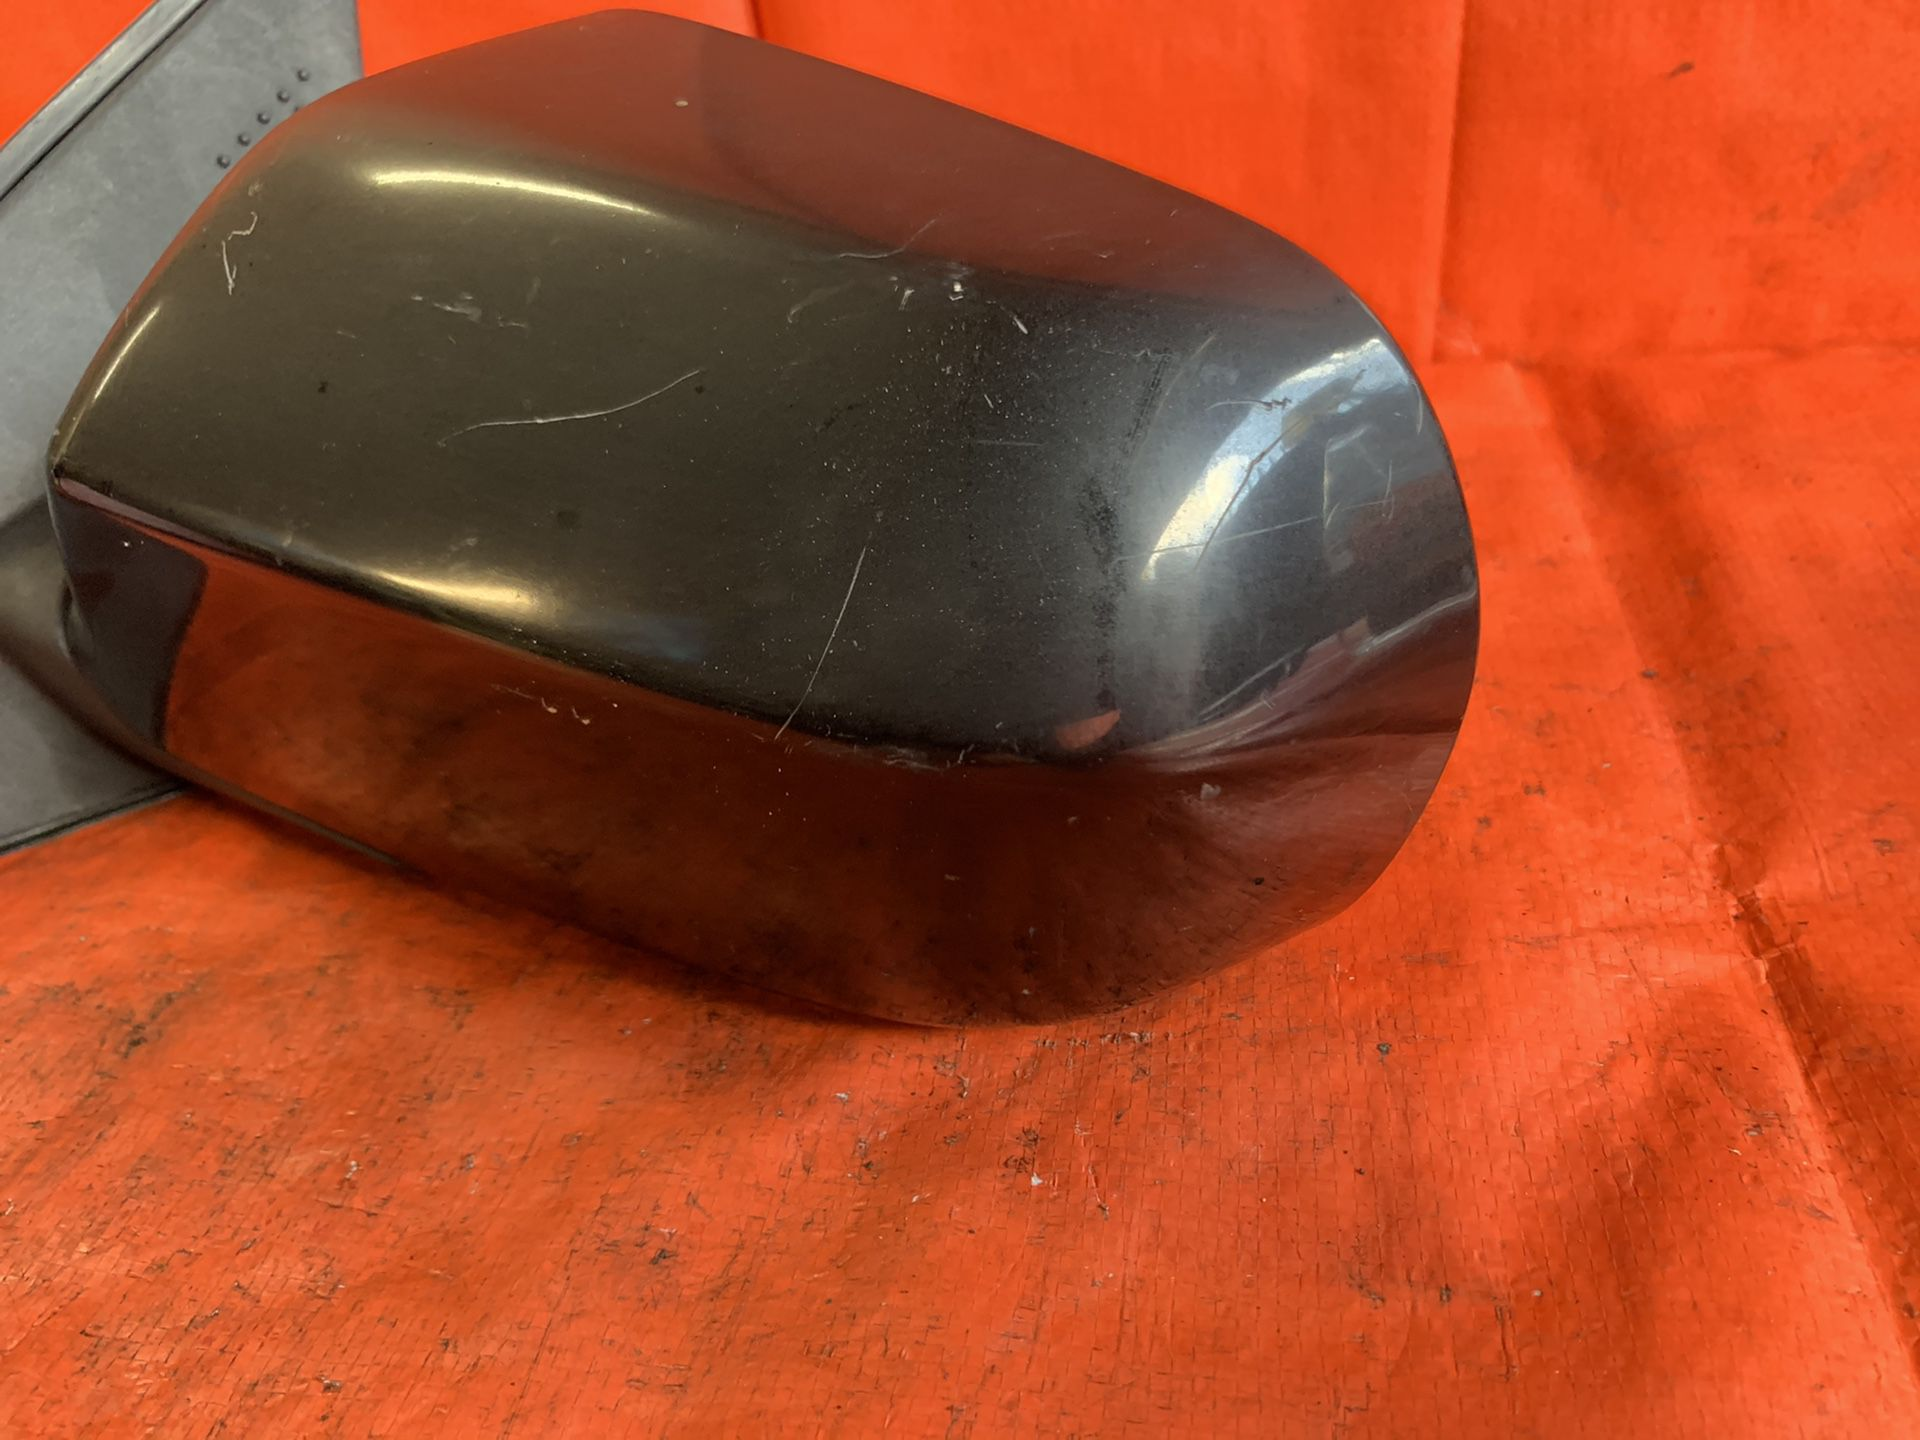 OEM 2005 ACURA RSX TYPE S - DRIVER LEFT SIDE VIEW MIRROR BLACK IN COLOR